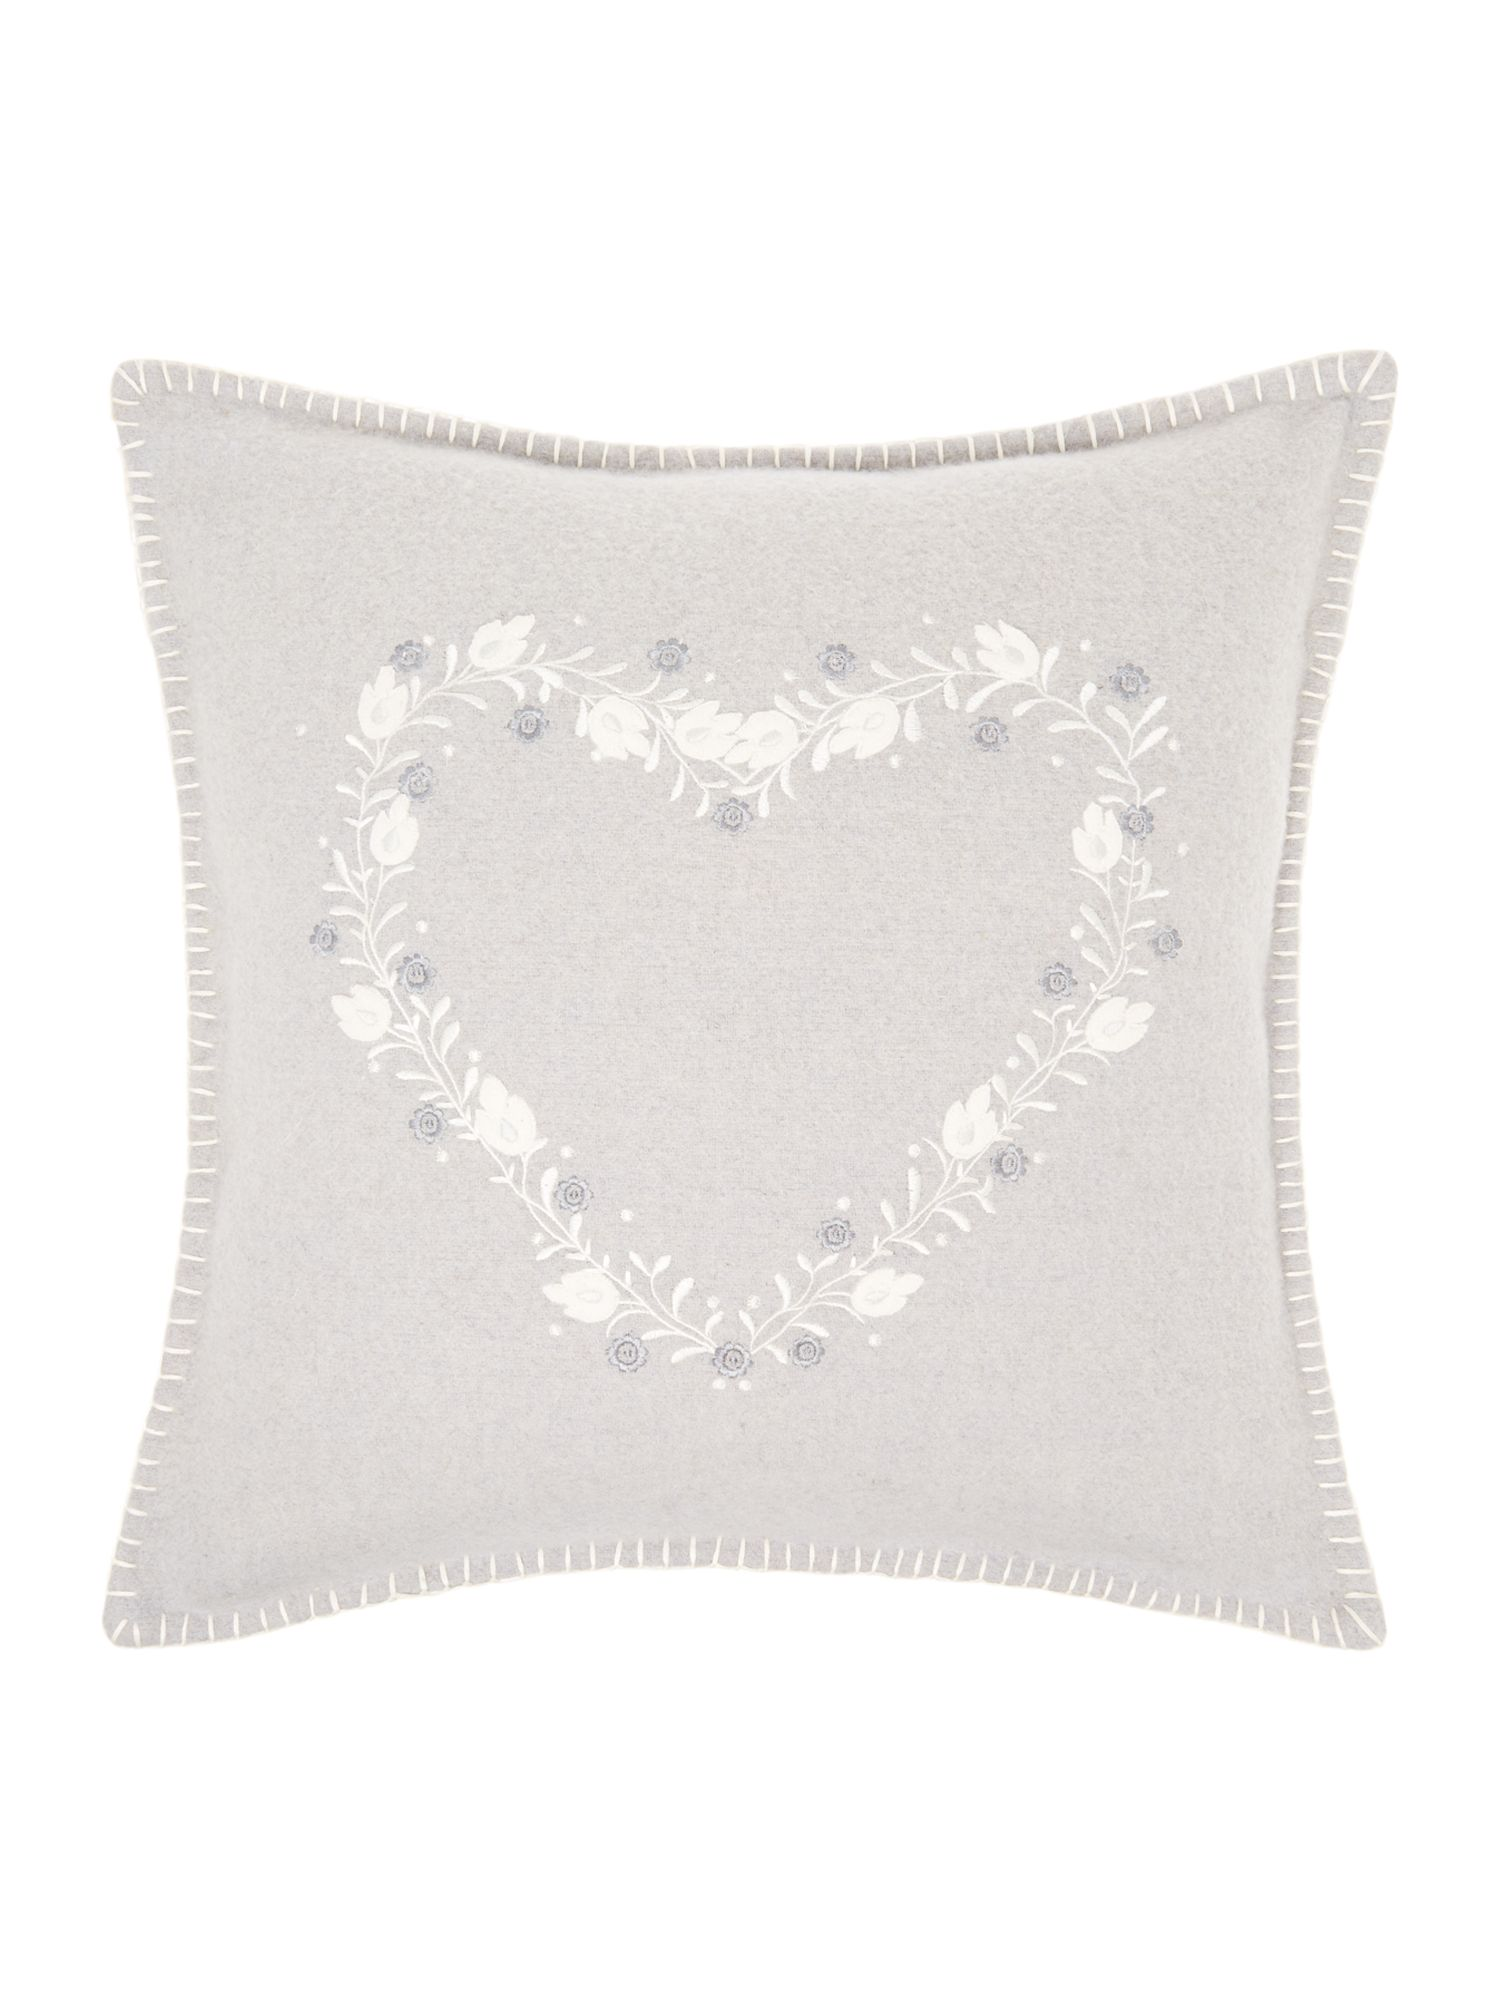 Heart embroidered felt cushion, grey